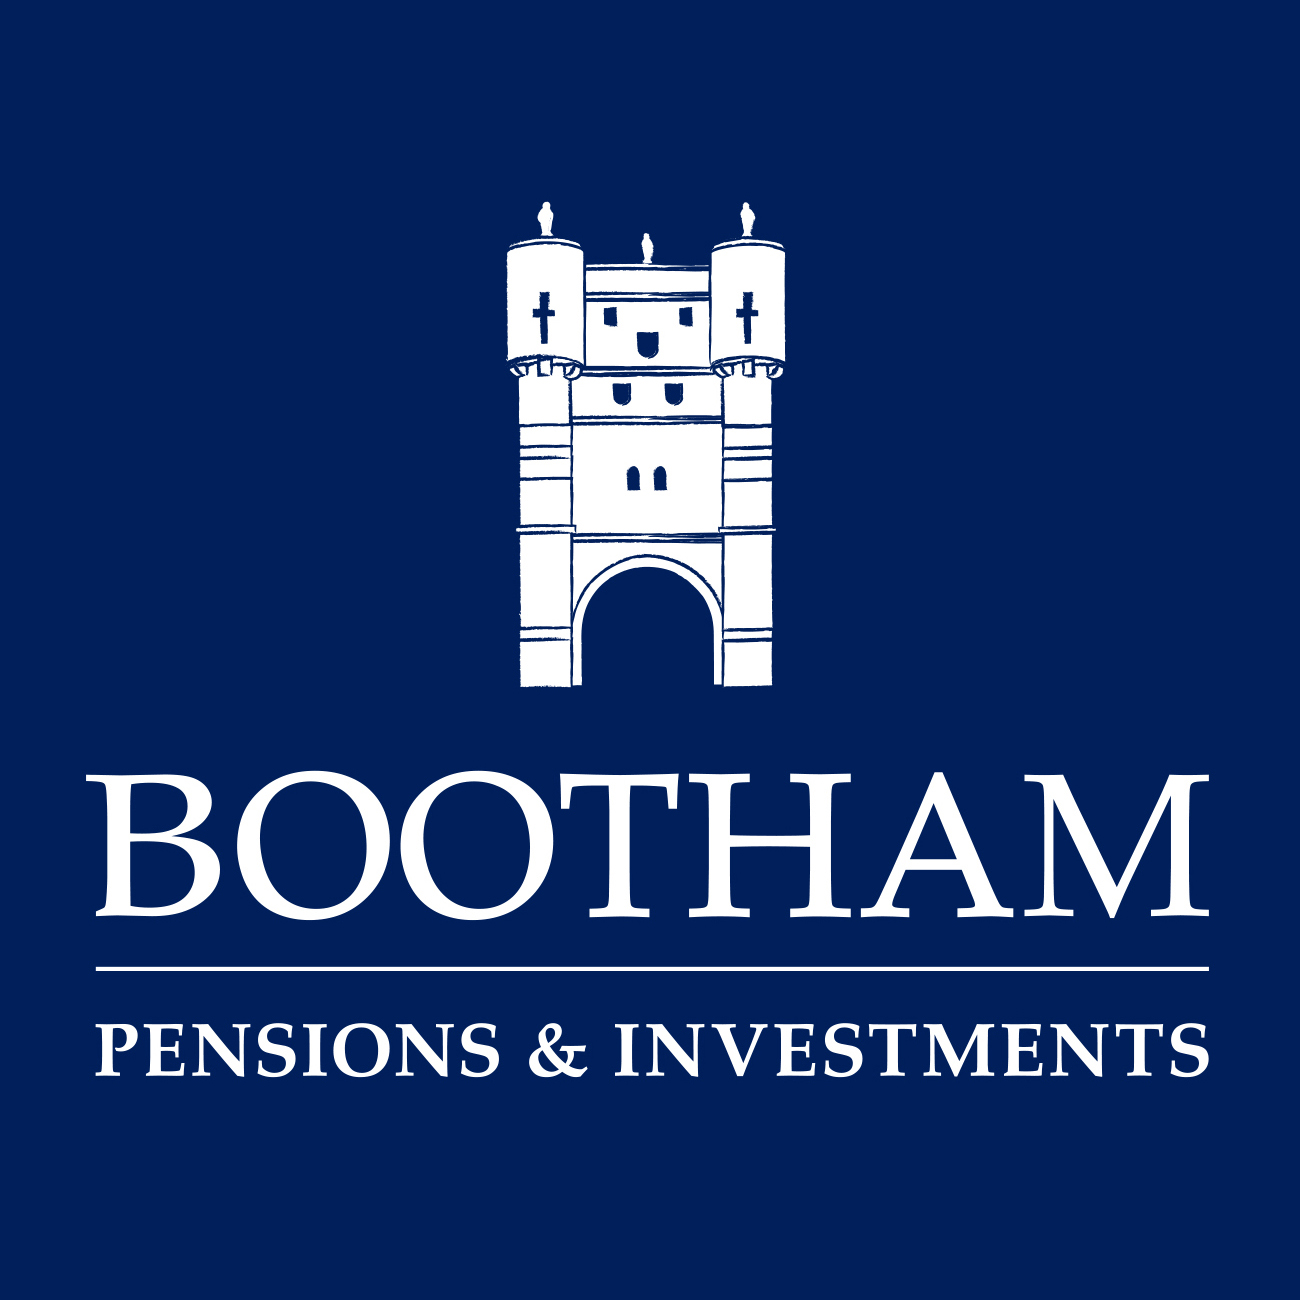 Bootham Pensions & Investments